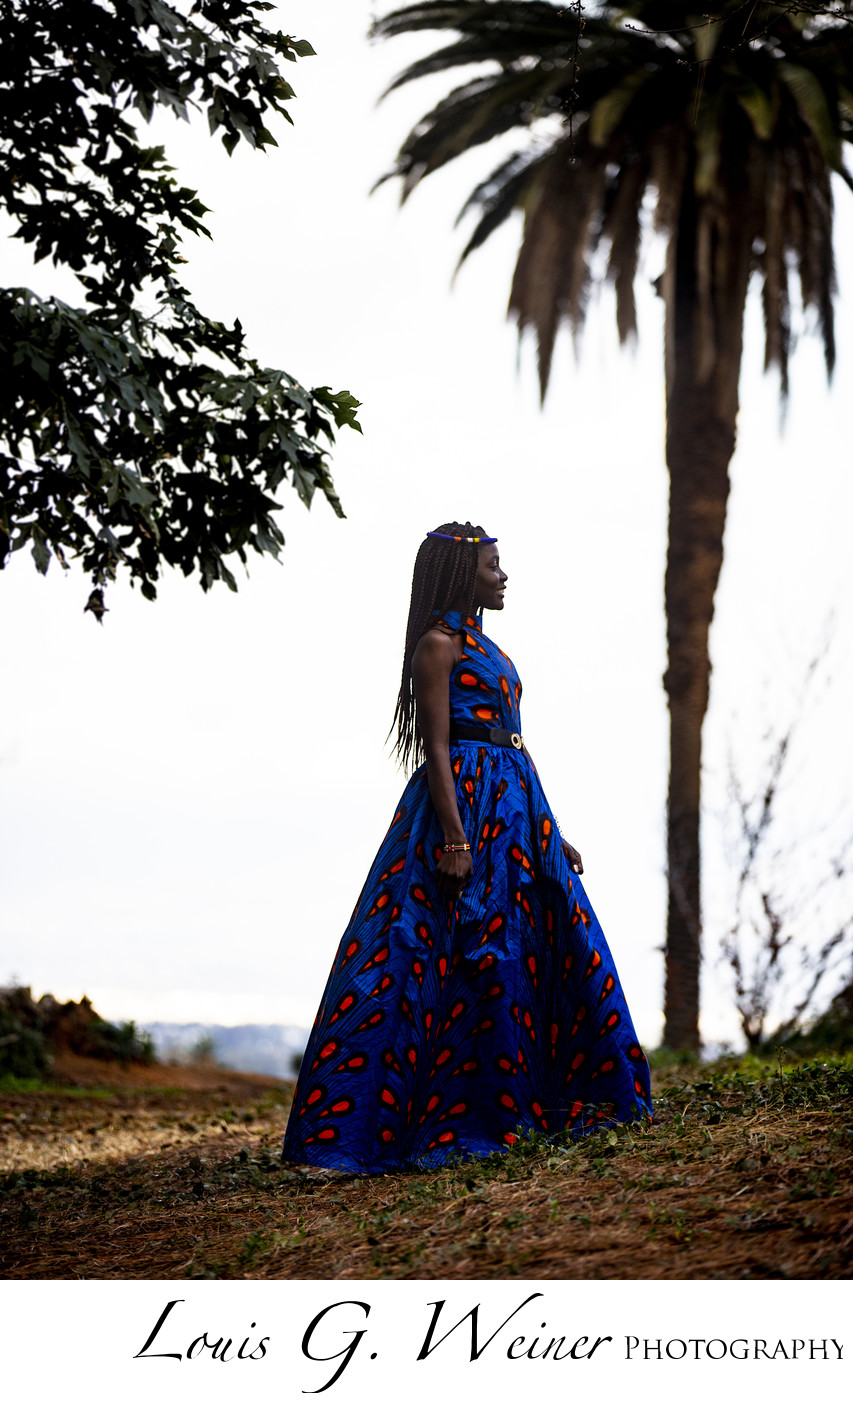 Silhouette fashion portrait photographed in Redlands CA